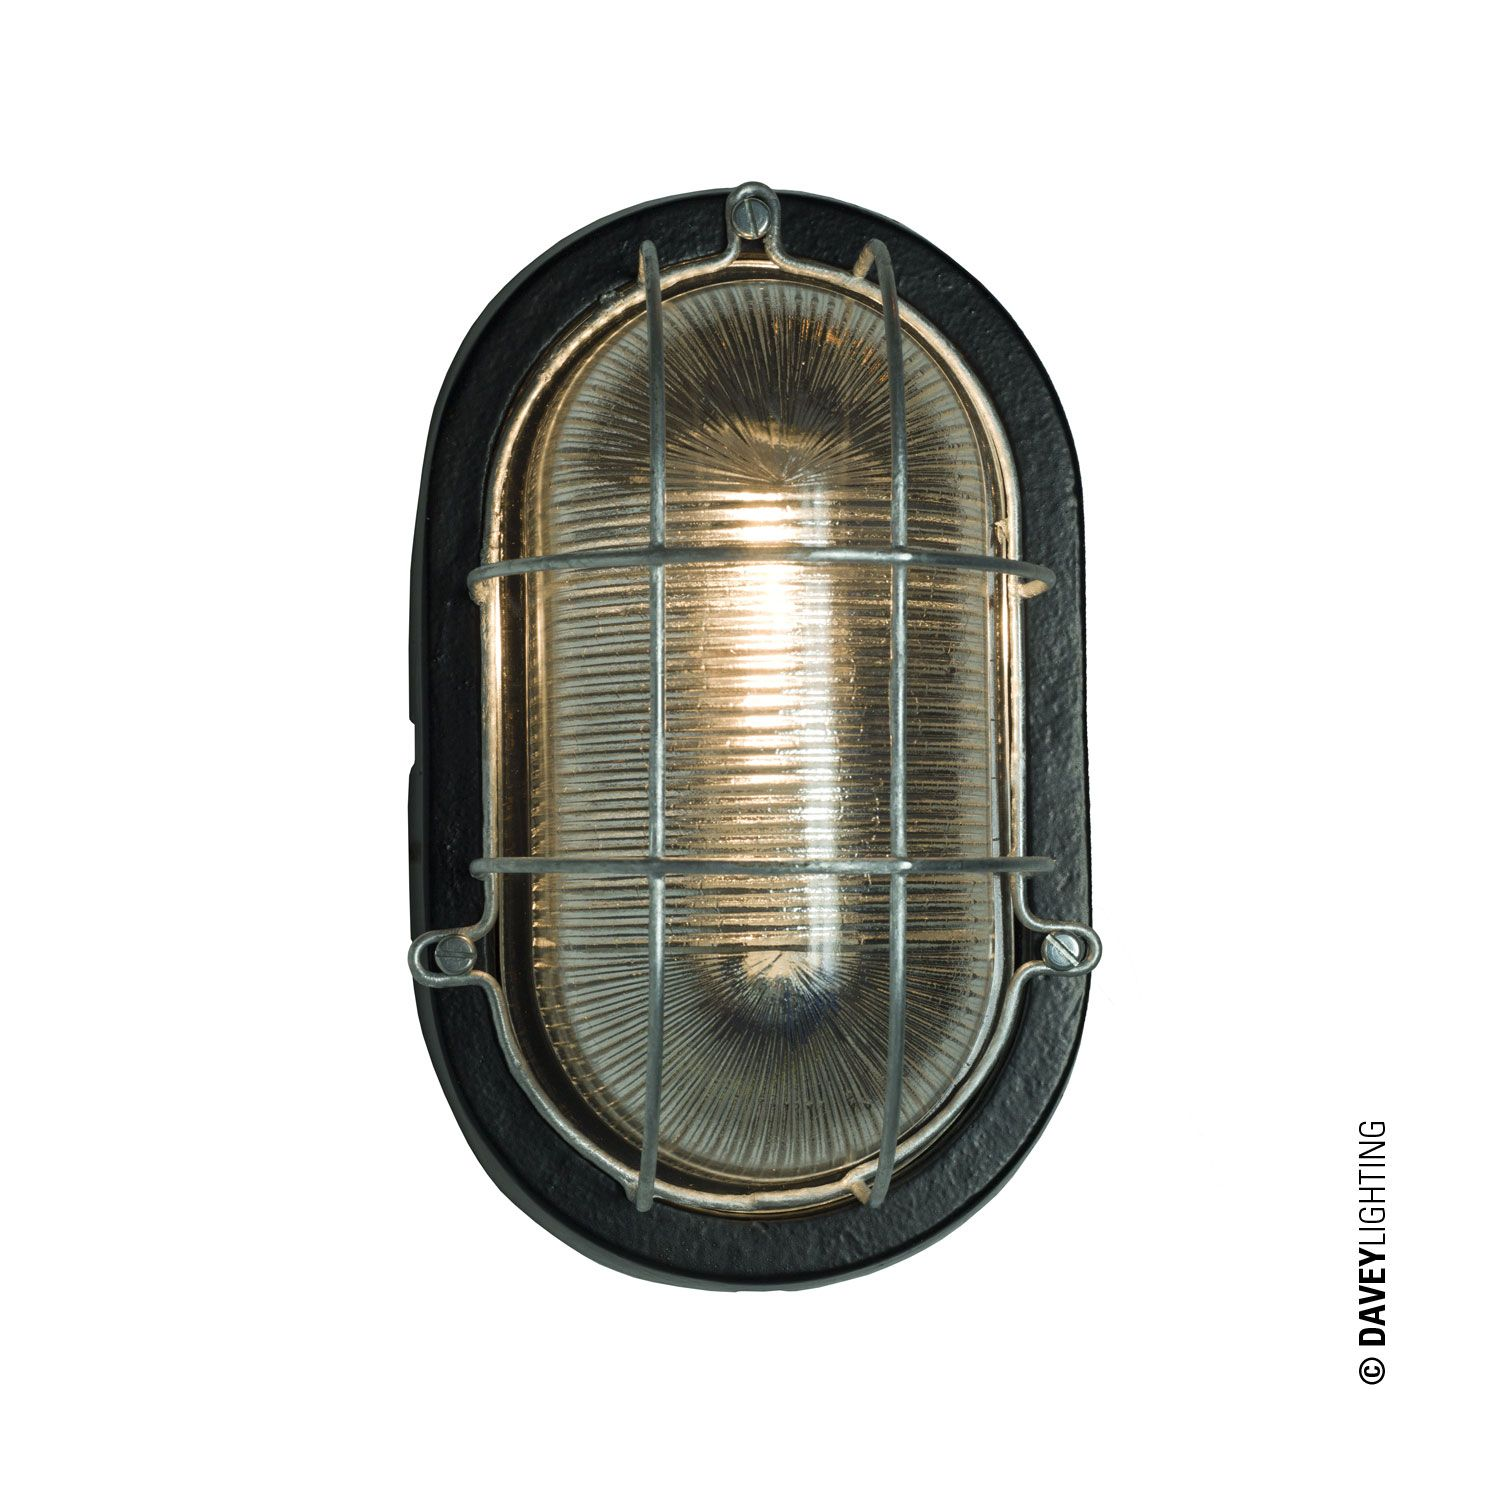 115 Lighting Matters Fr Appliques Ou Plafonniers D Exterieur 7003 Oval Aluminium Bulkhead Fittings Davey Lighting Wall Lighting Design Marine Lighting